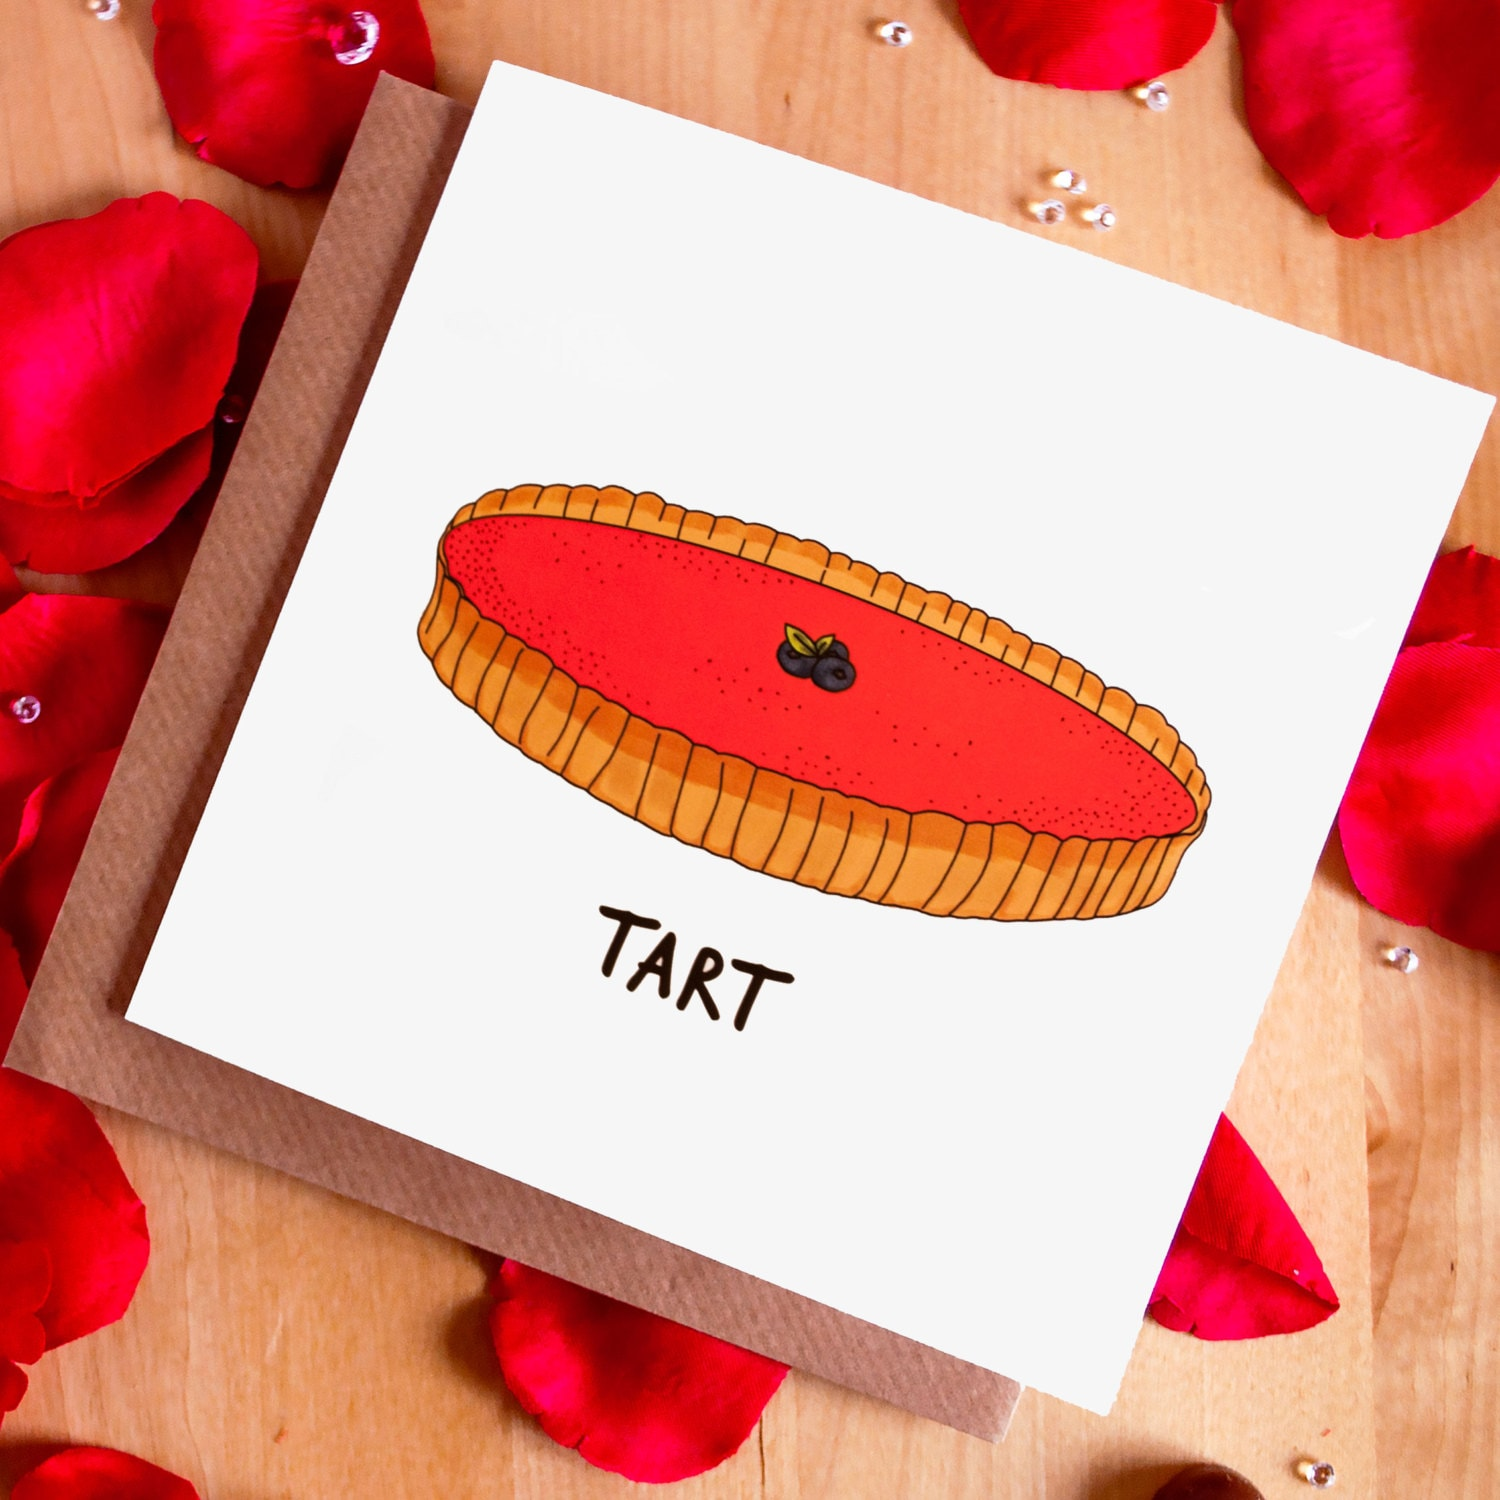 Tart scottish greetings card humour funny insult zoom kristyandbryce Images